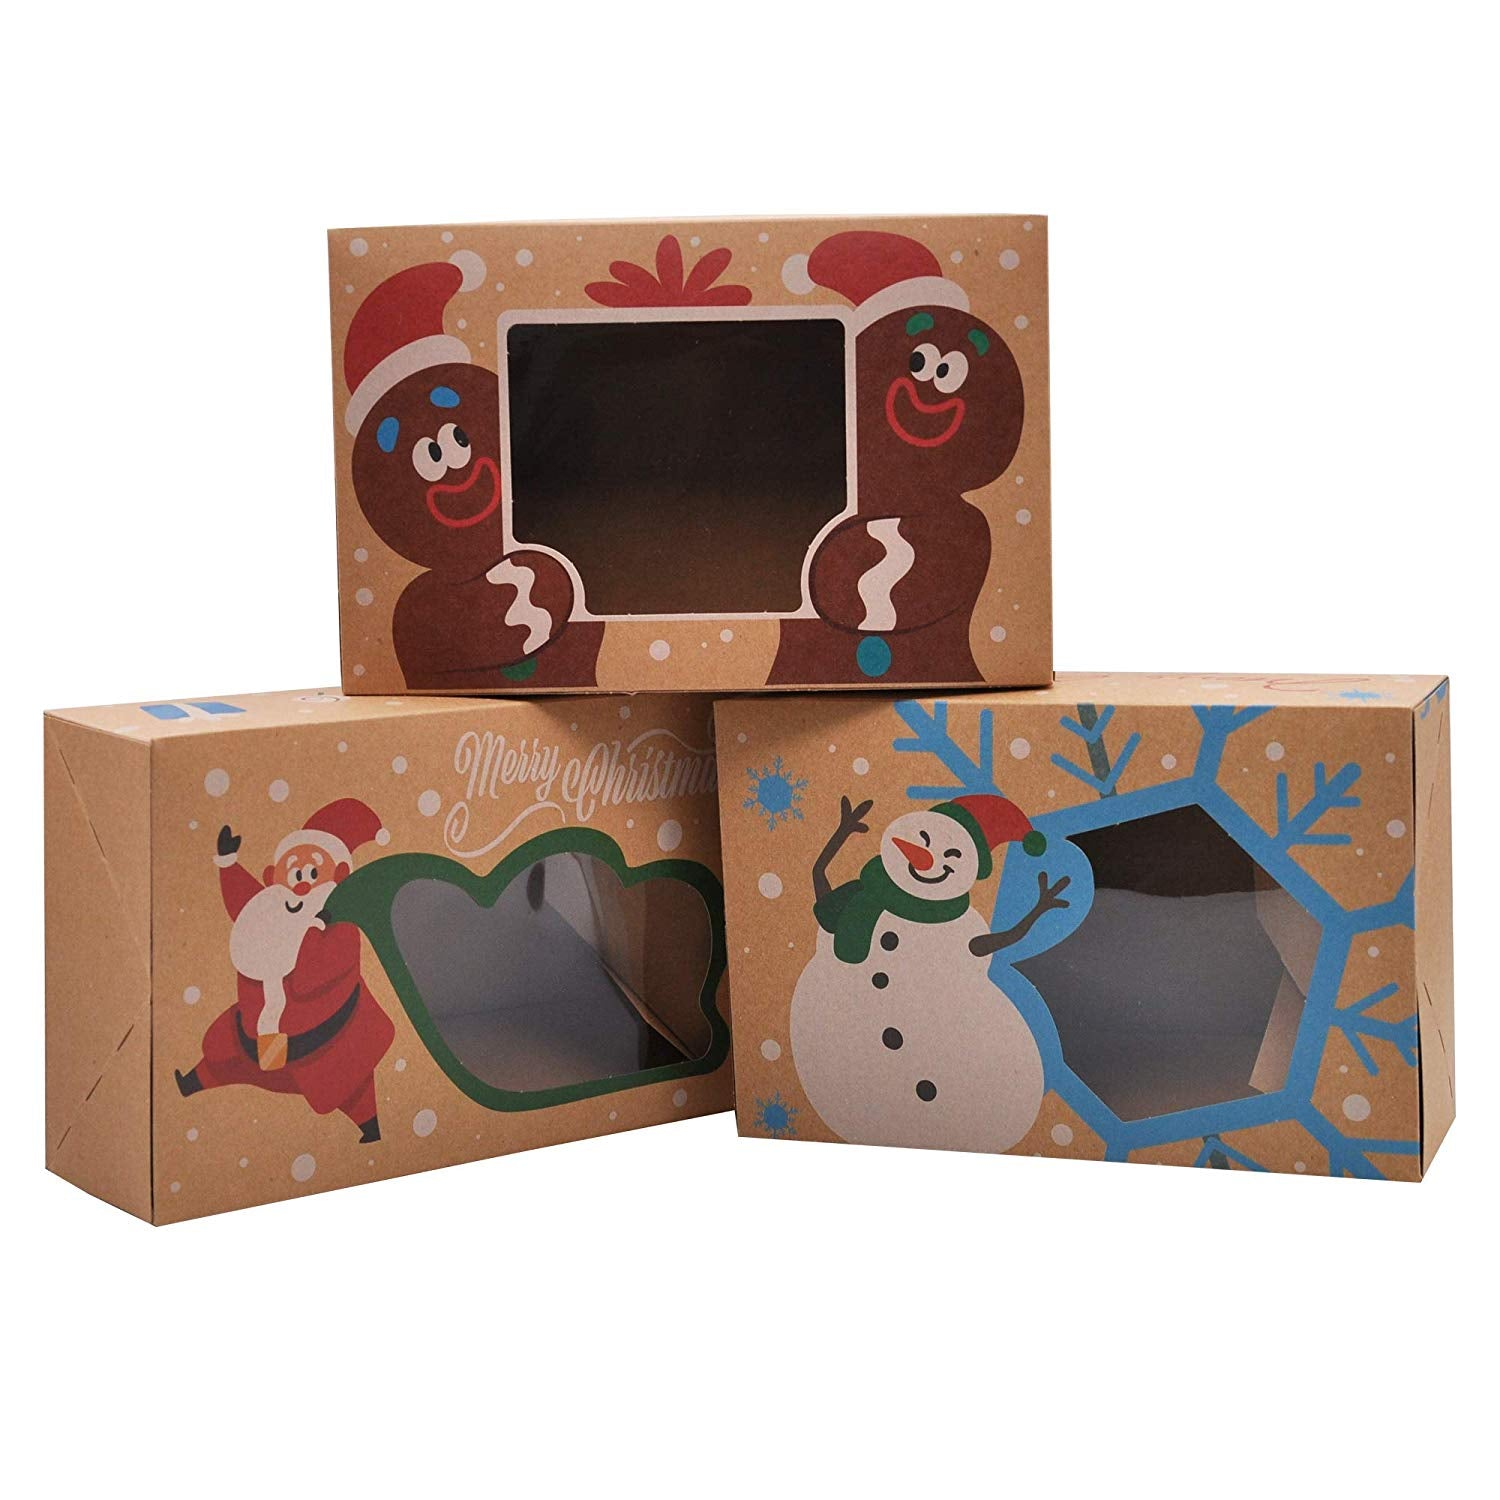 Christmas Cookie Gift Baking Box